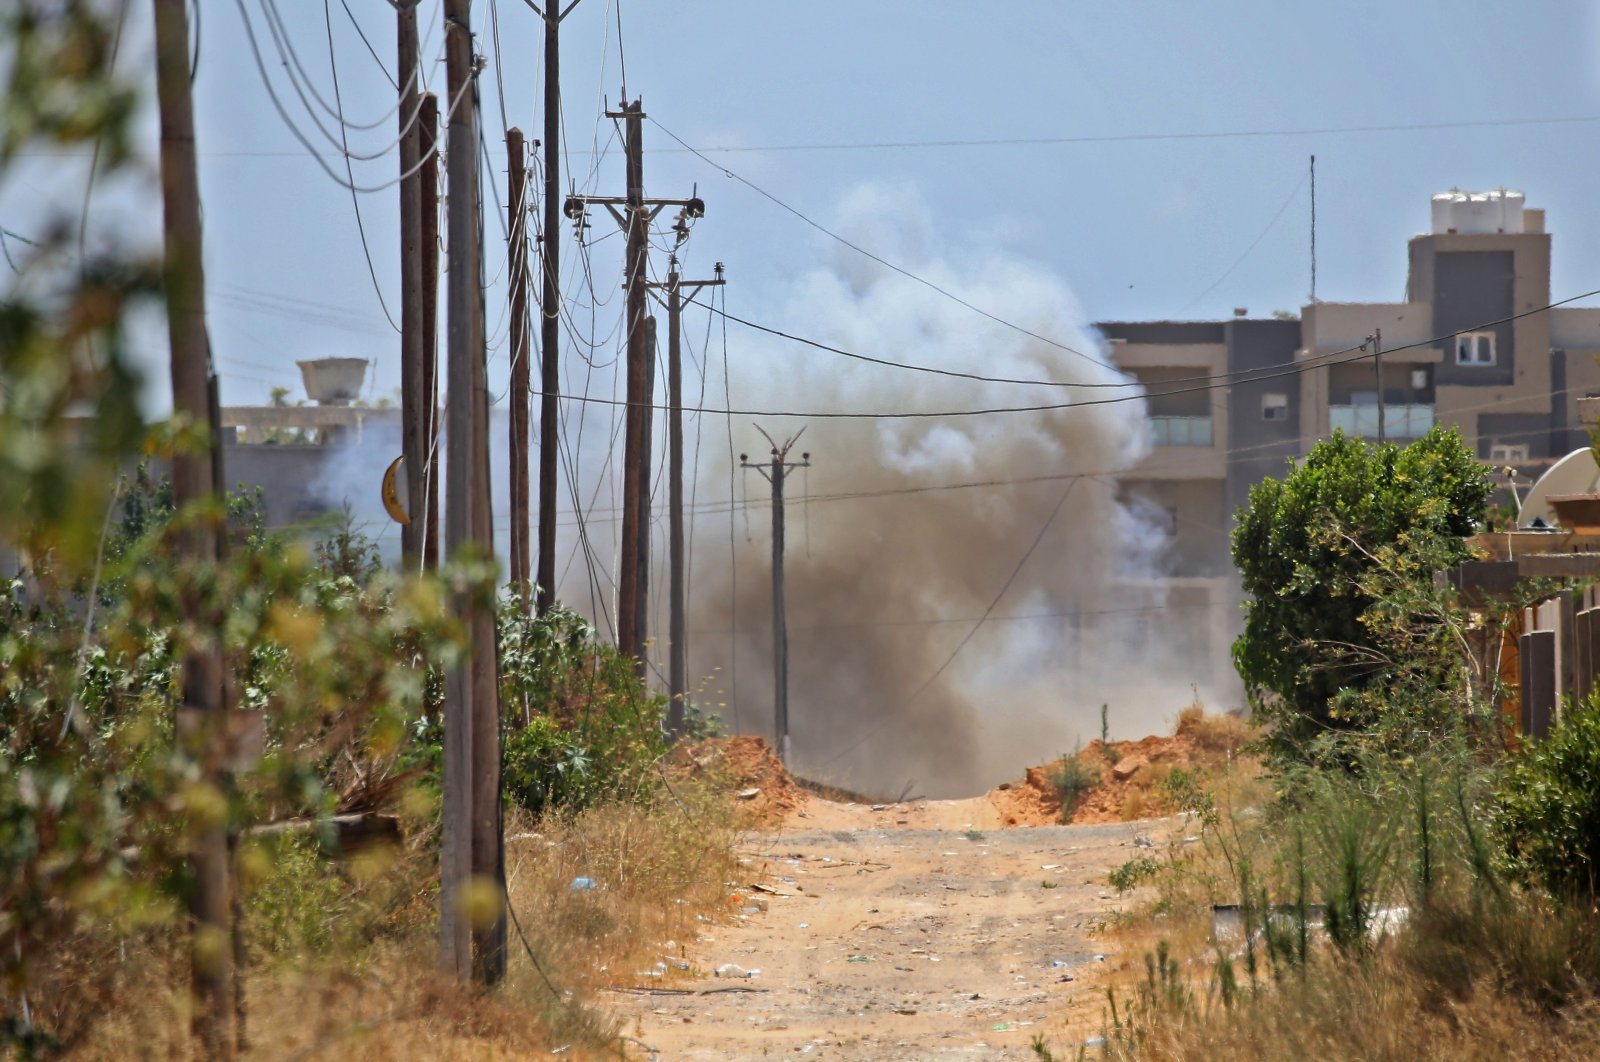 A landmine explodes during Turkish demining operations in the Salah al-Din area, south of Tripoli, Libya, June 15, 2020. (AFP Photo)